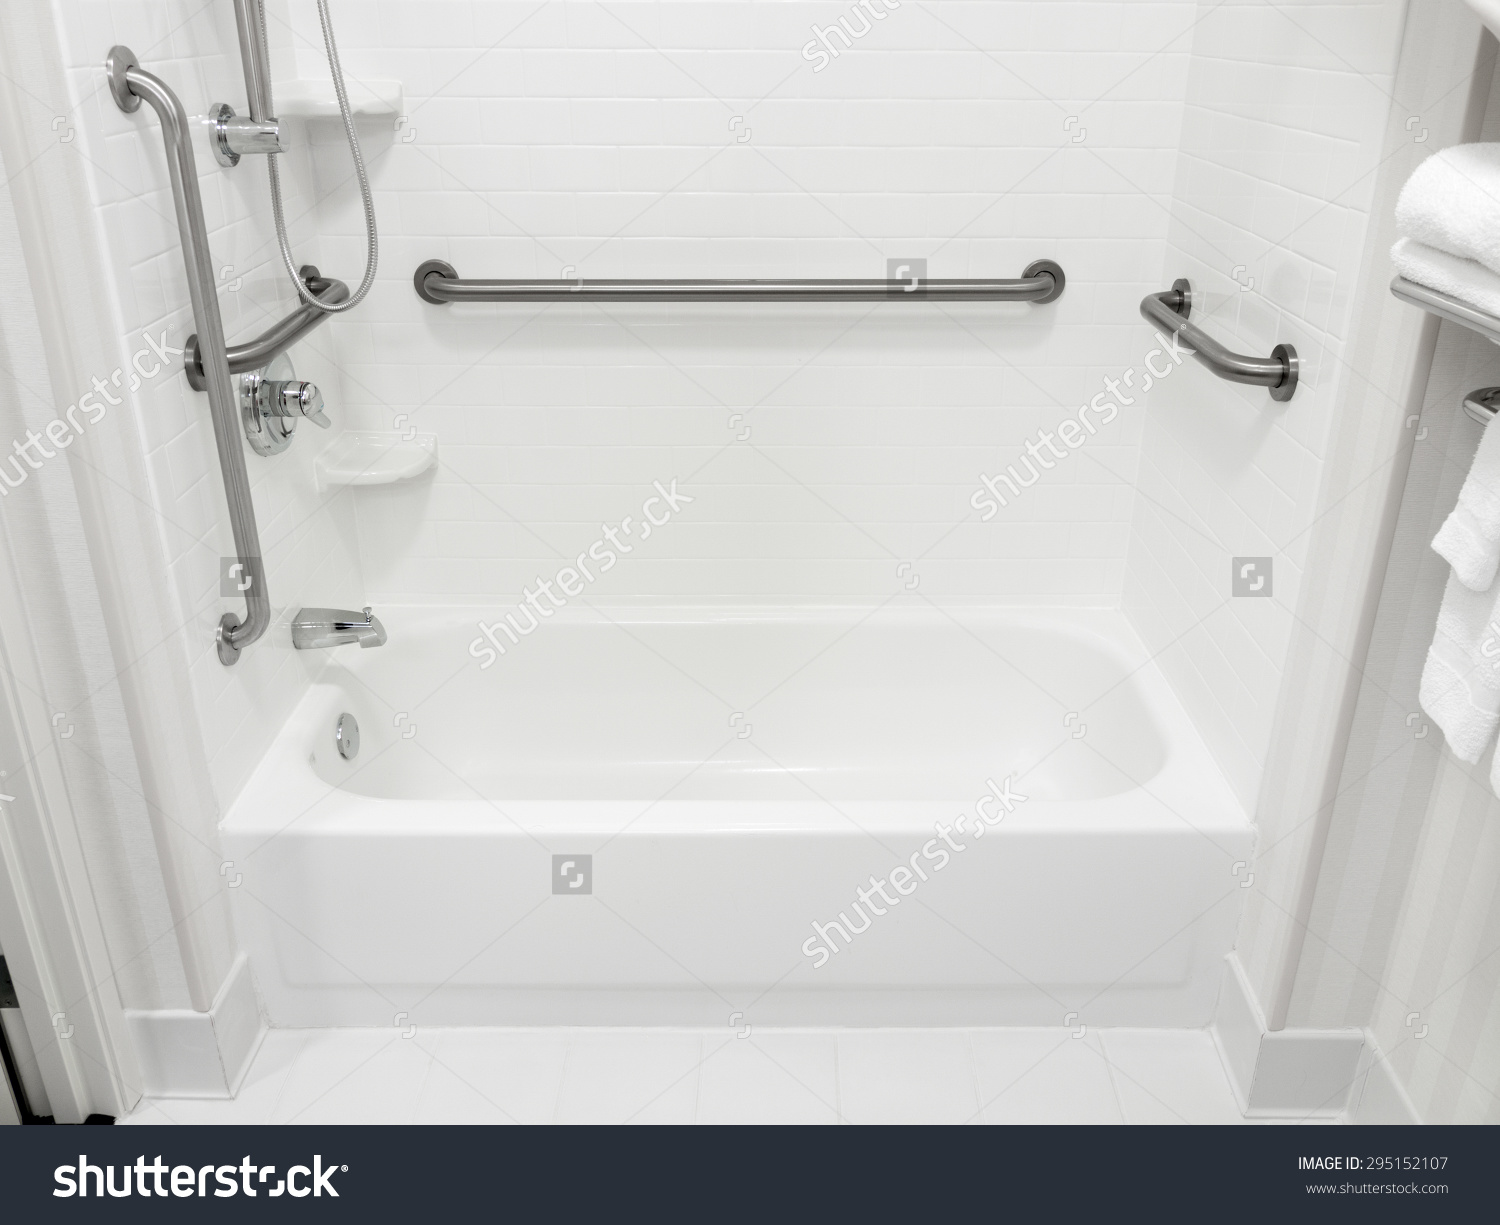 Handicapped Disabled Access Bathroom Bathtub Grab Stock Photo.